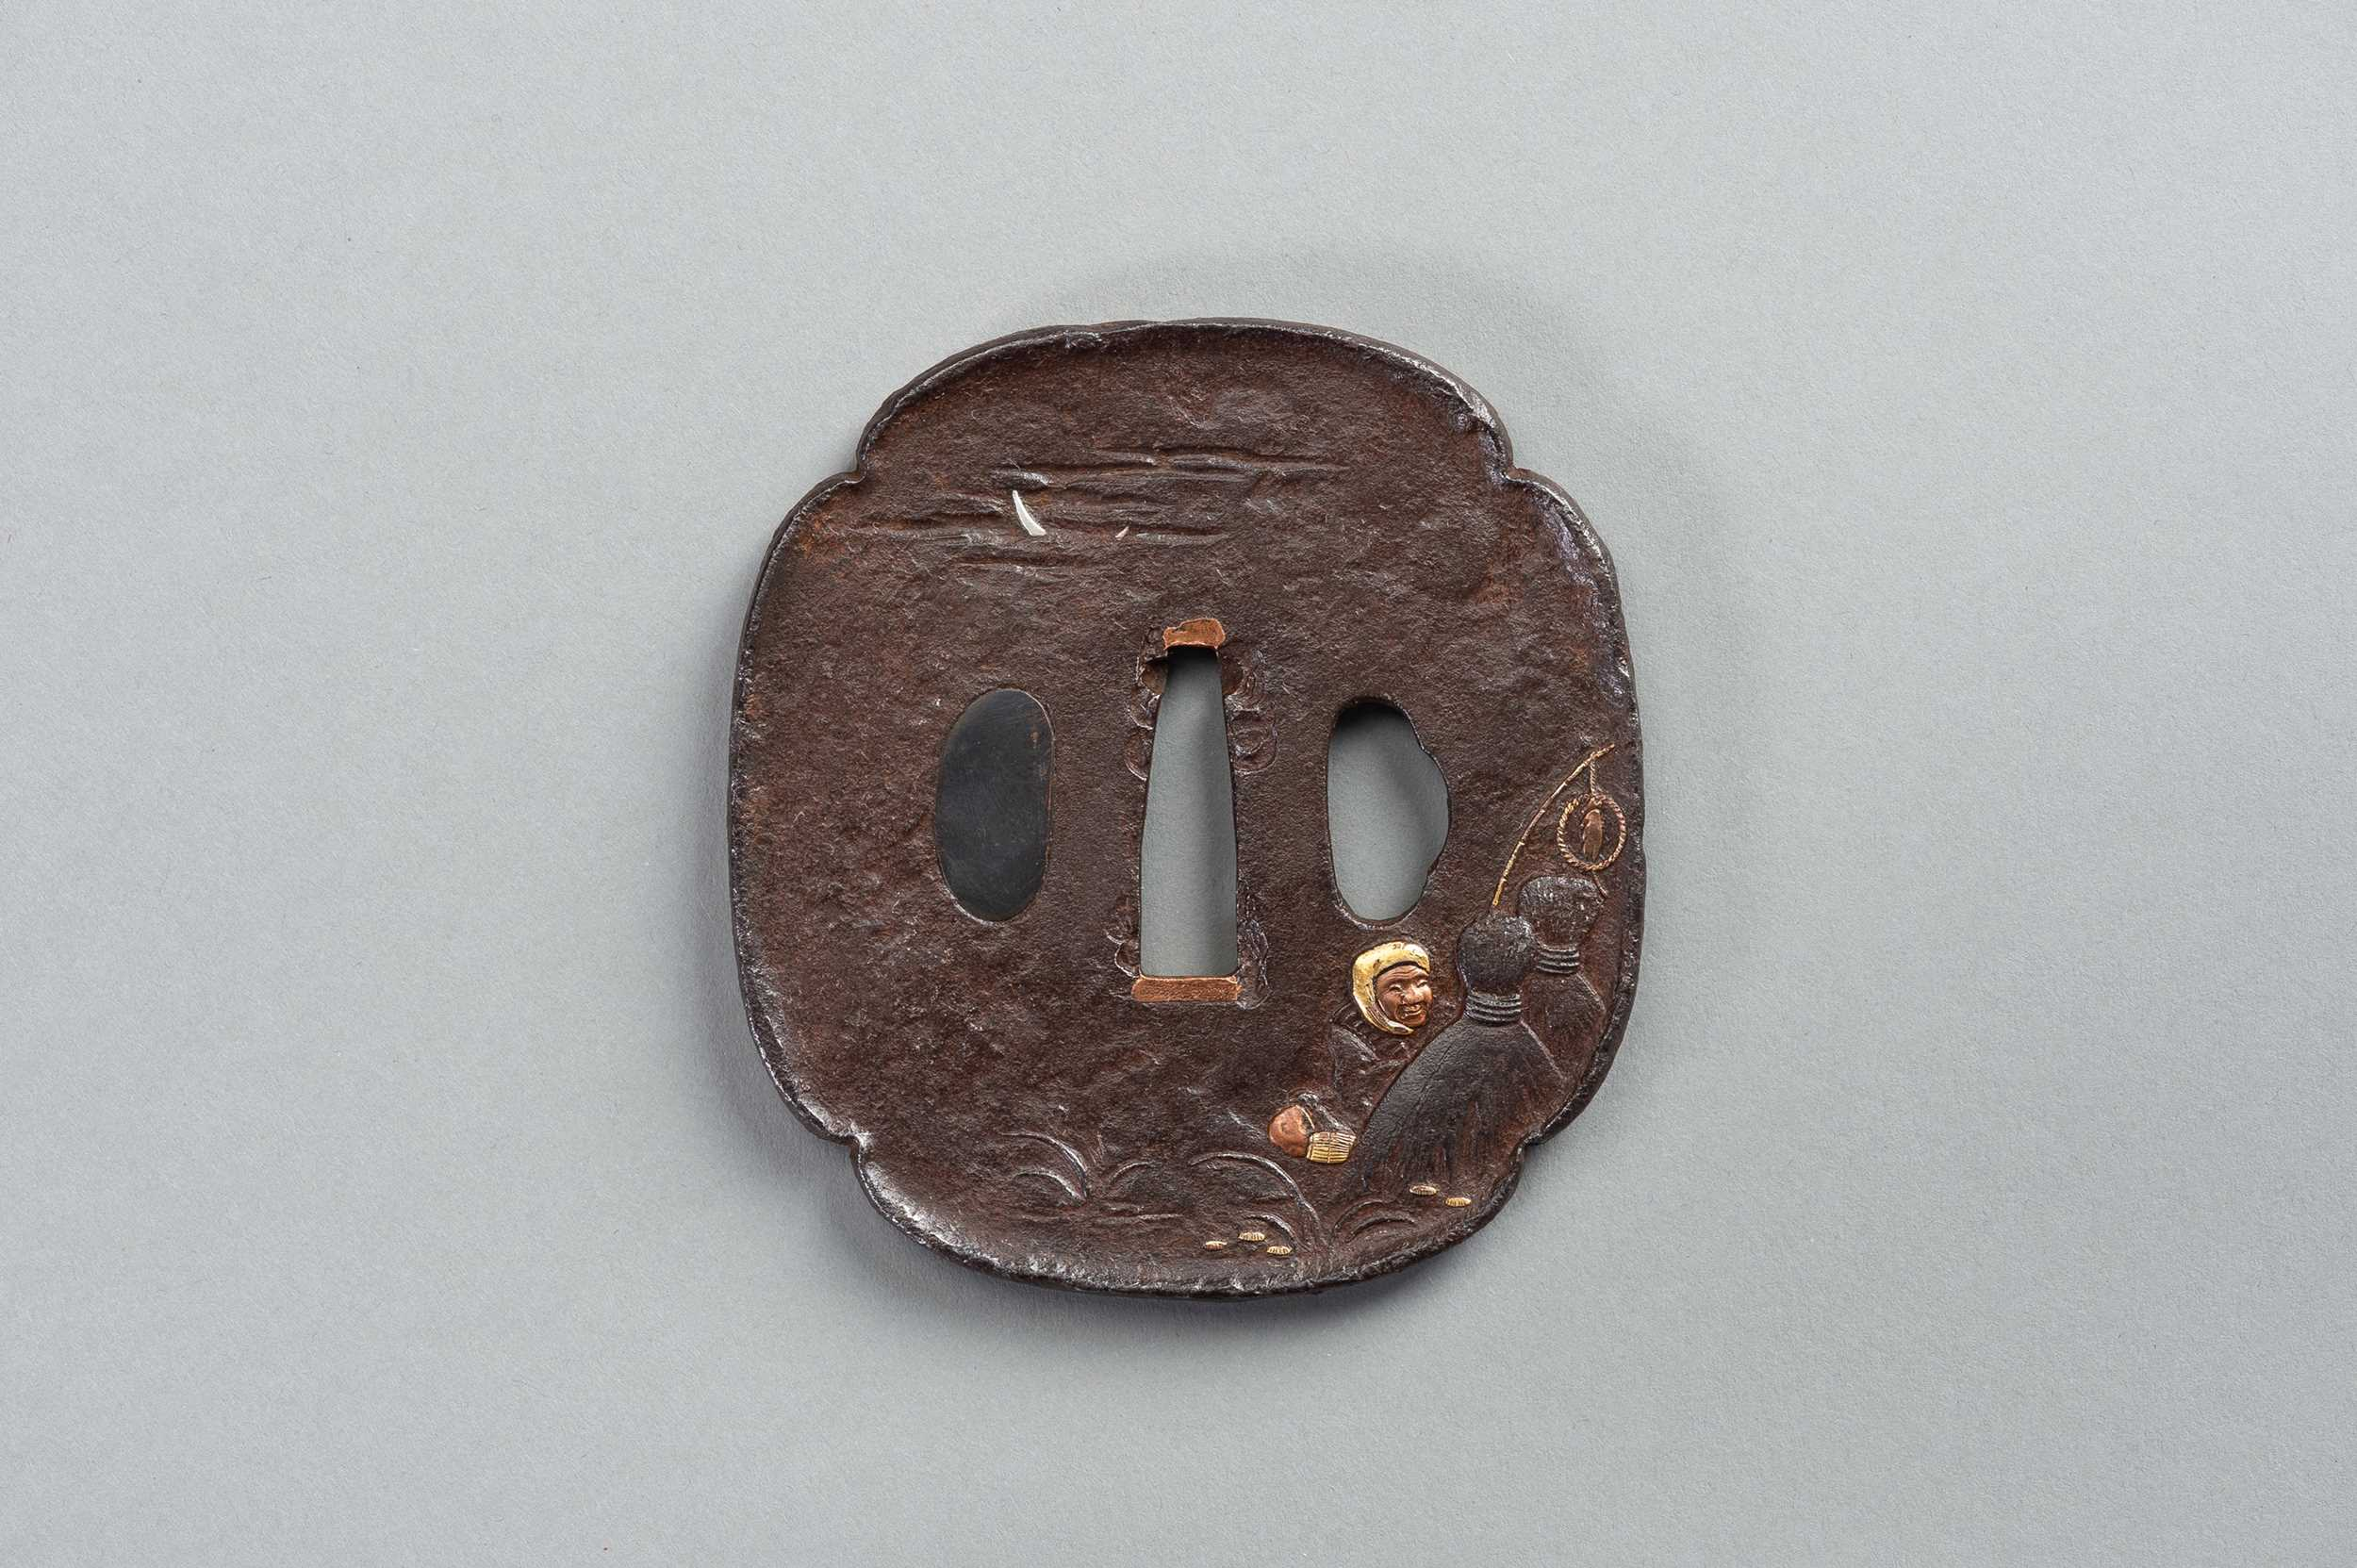 Lot 38 - AN INLAID IRON TSUBA WITH A MAN TRYING TO CATCH A FOX